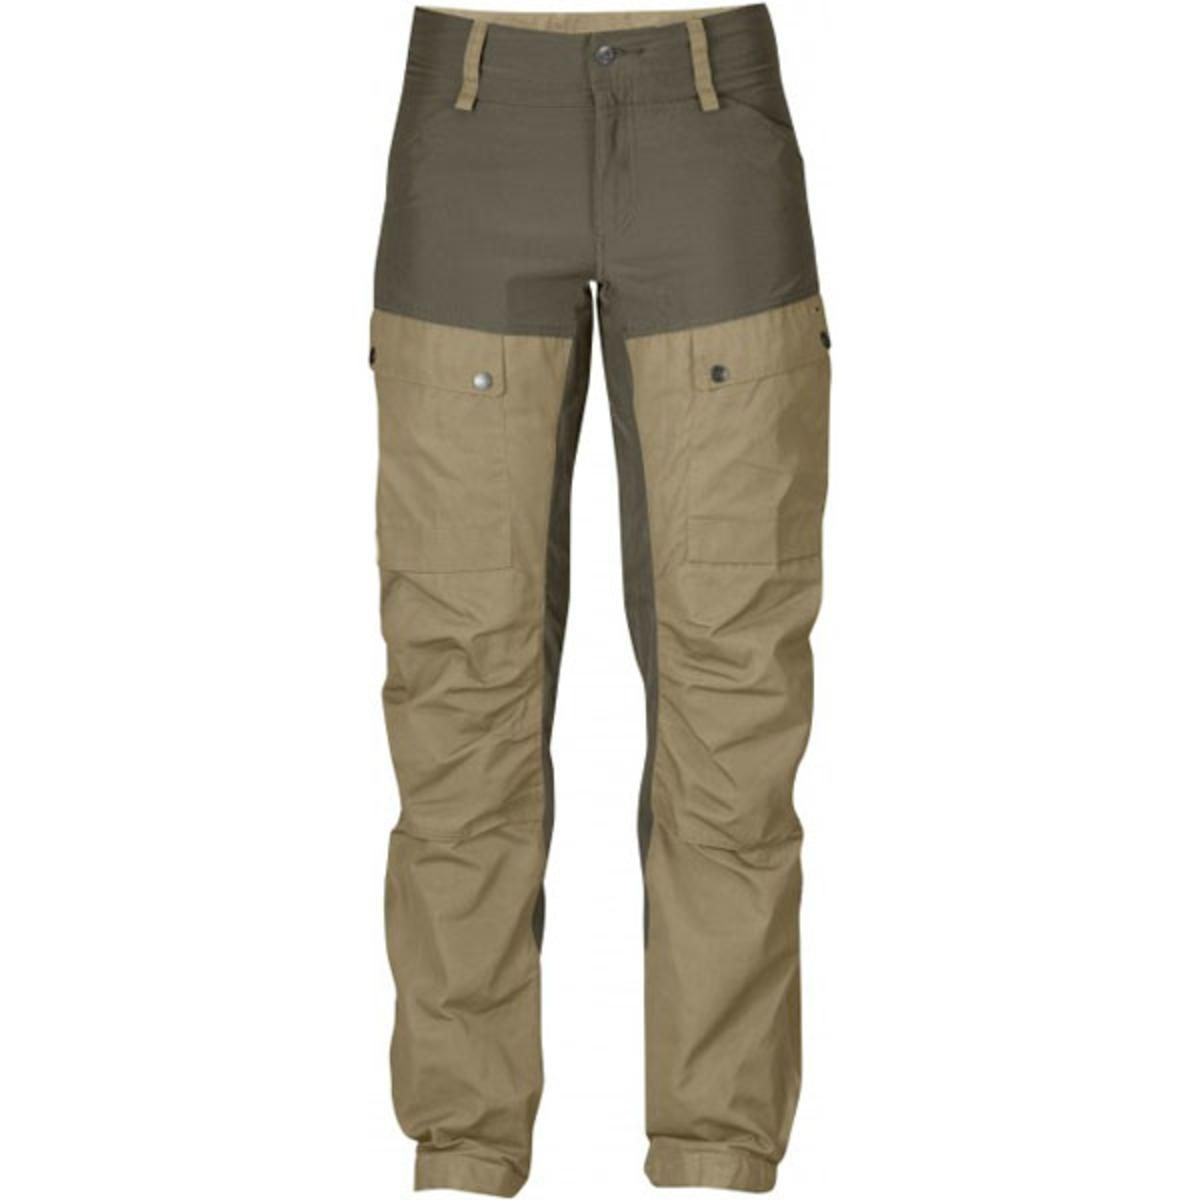 a873aa3730579 FjallRaven Women's Keb Trousers Regular - Sand - The Warming Store